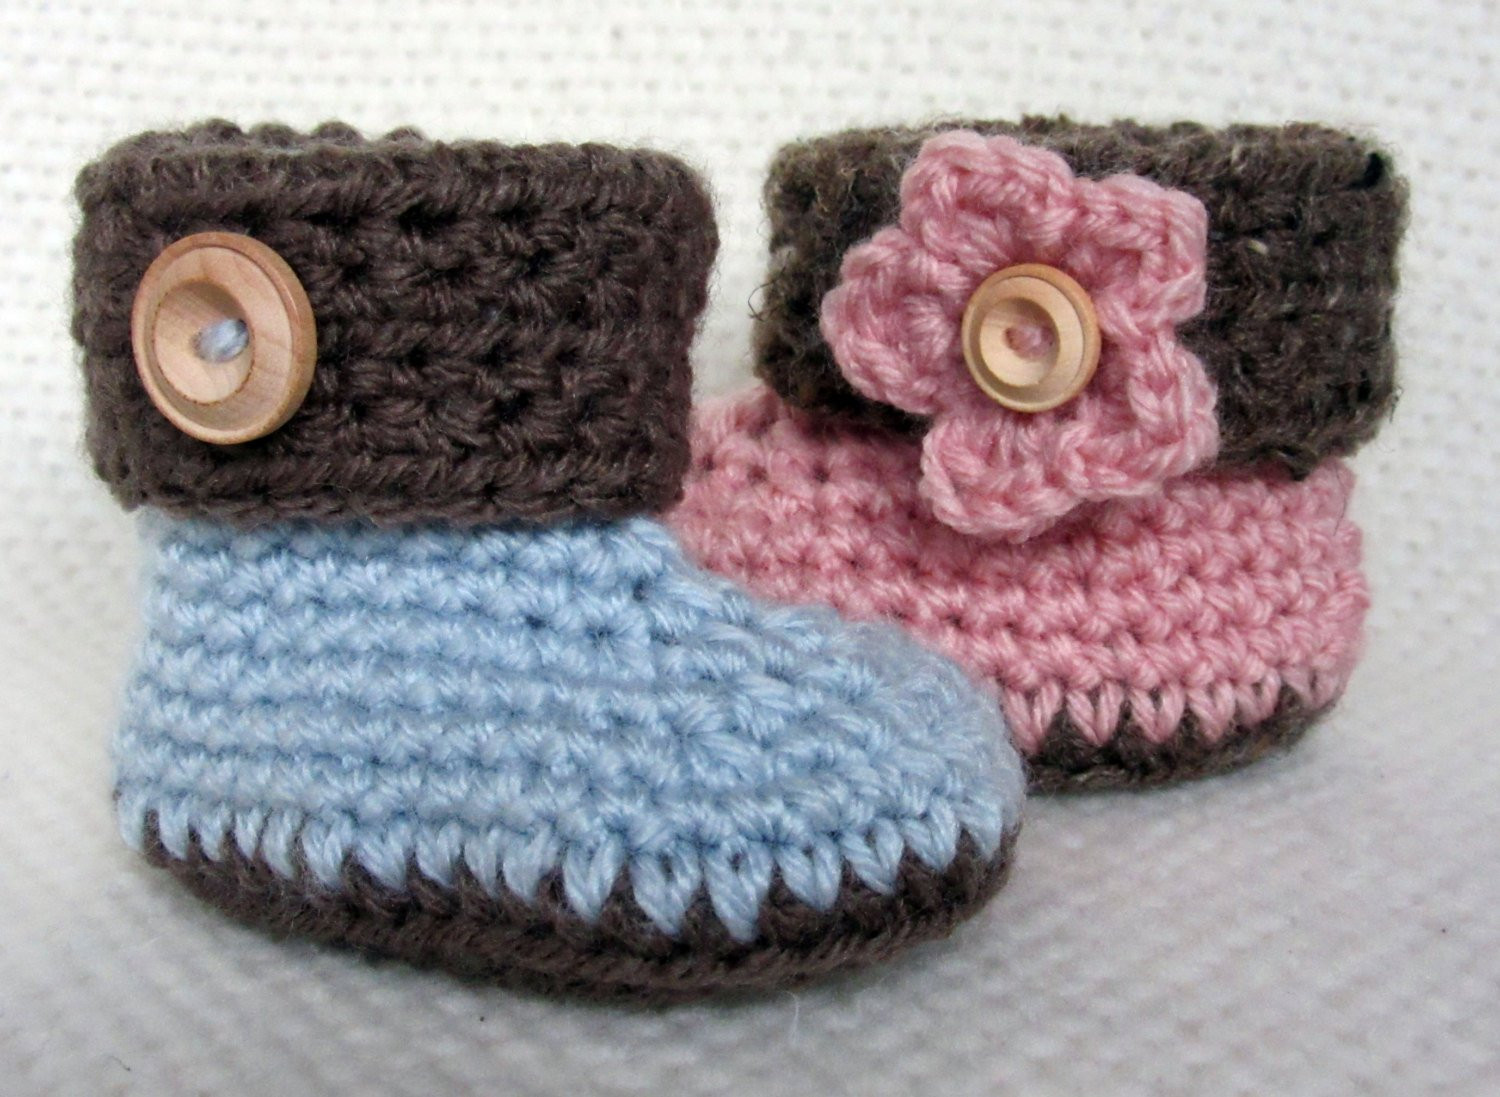 Beautiful Crochet Cuffed Baby Booties Baby Booties Baby Shoes Baby Crochet Newborn Baby Booties Of Incredible 49 Models Crochet Newborn Baby Booties